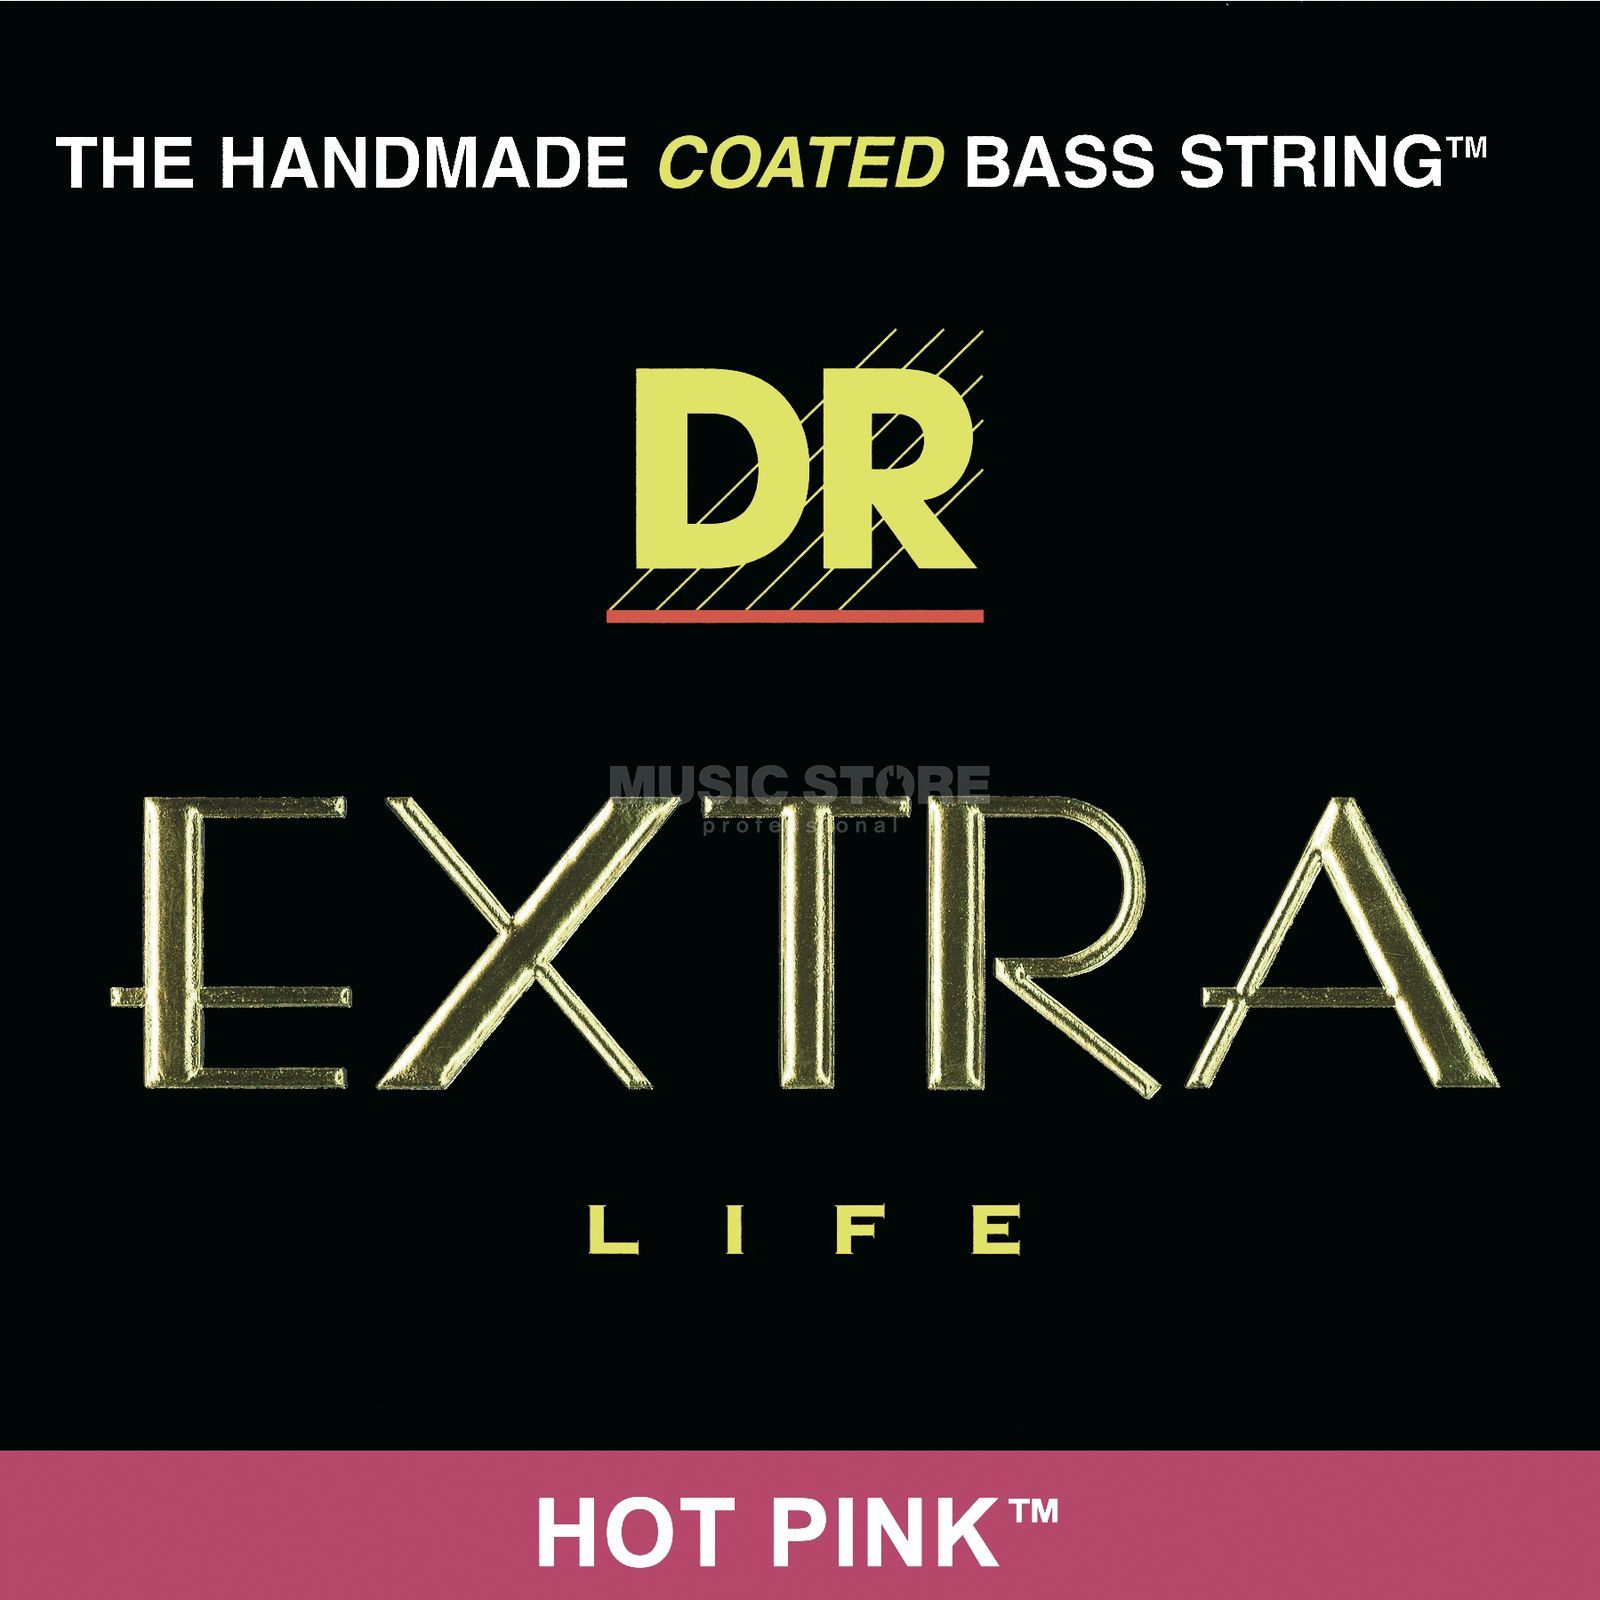 DR 4er bas 45-105 Extra-Life Hot Pink PKB-45 Productafbeelding